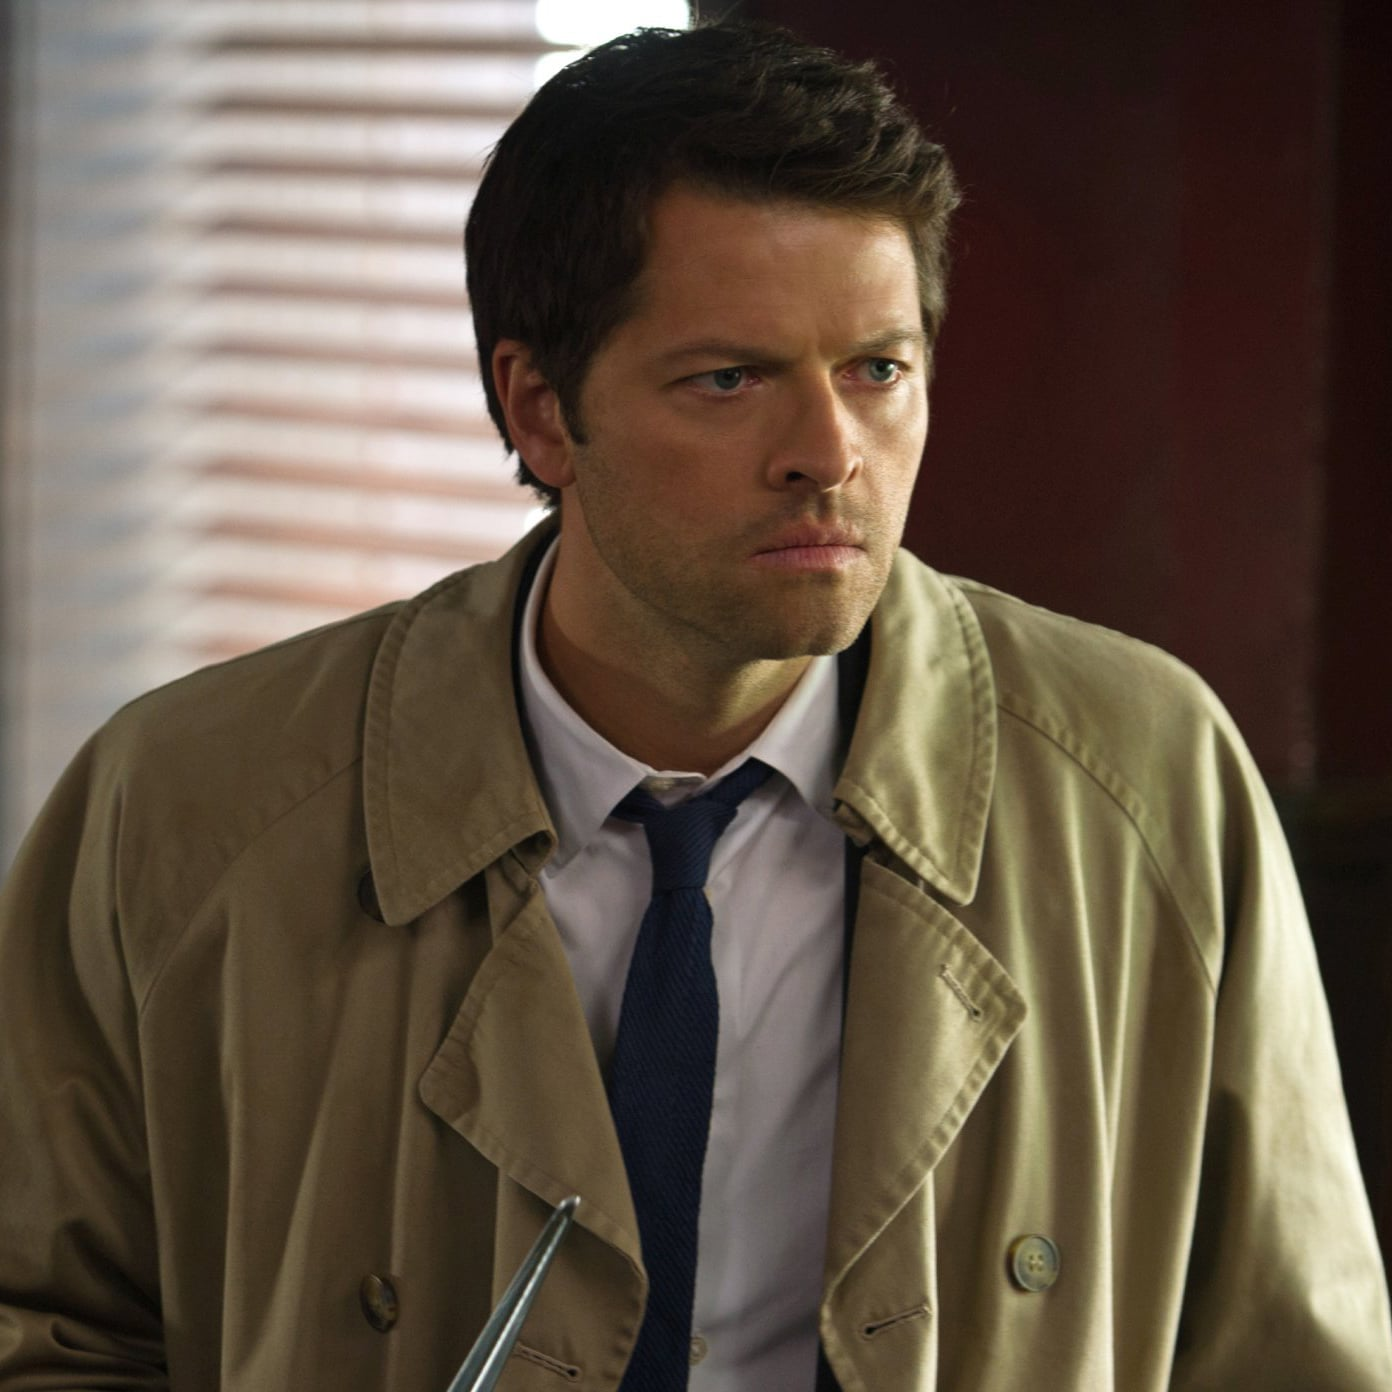 supernatural halloween costume ideas | popsugar entertainment